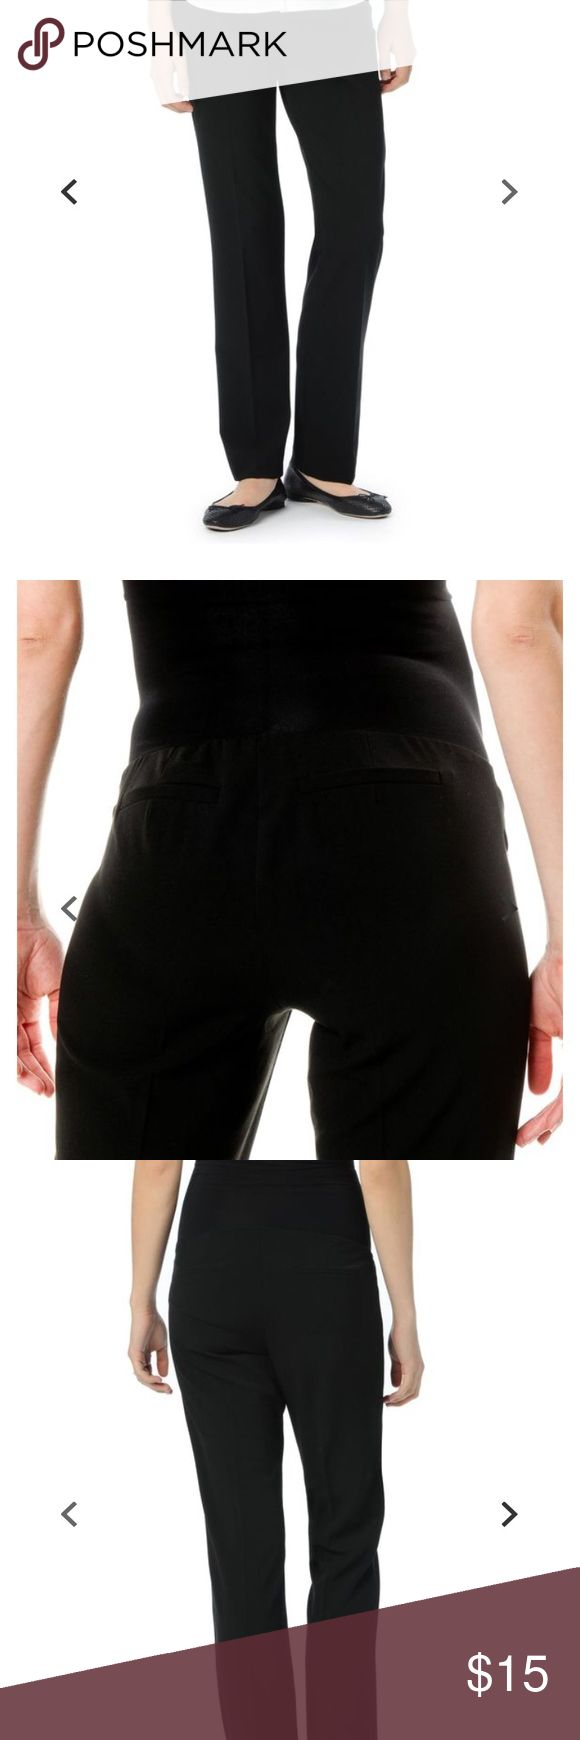 Maternity suit pants Black maternity suit pants. Super stretchy and comfortable for all day wear. Straight leg. Faux pockets. Motherhood Maternity Pants